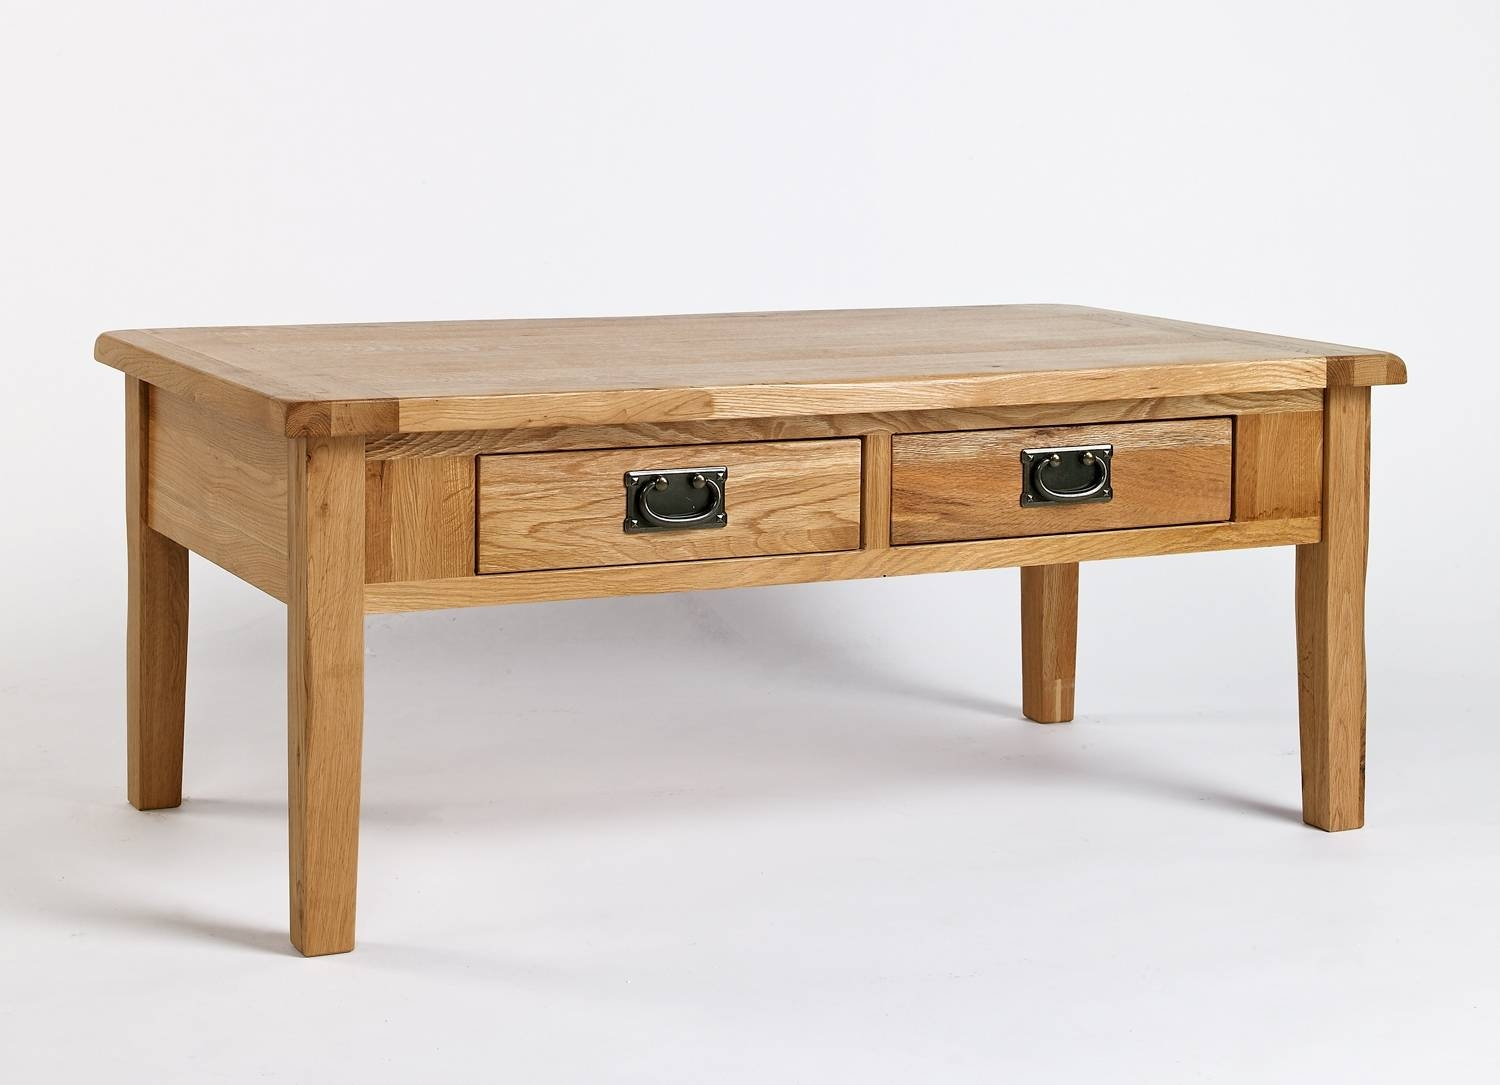 Oak Coffee Table With Drawers Uk | Coffee Tables Decoration pertaining to Low Coffee Tables With Drawers (Image 26 of 30)